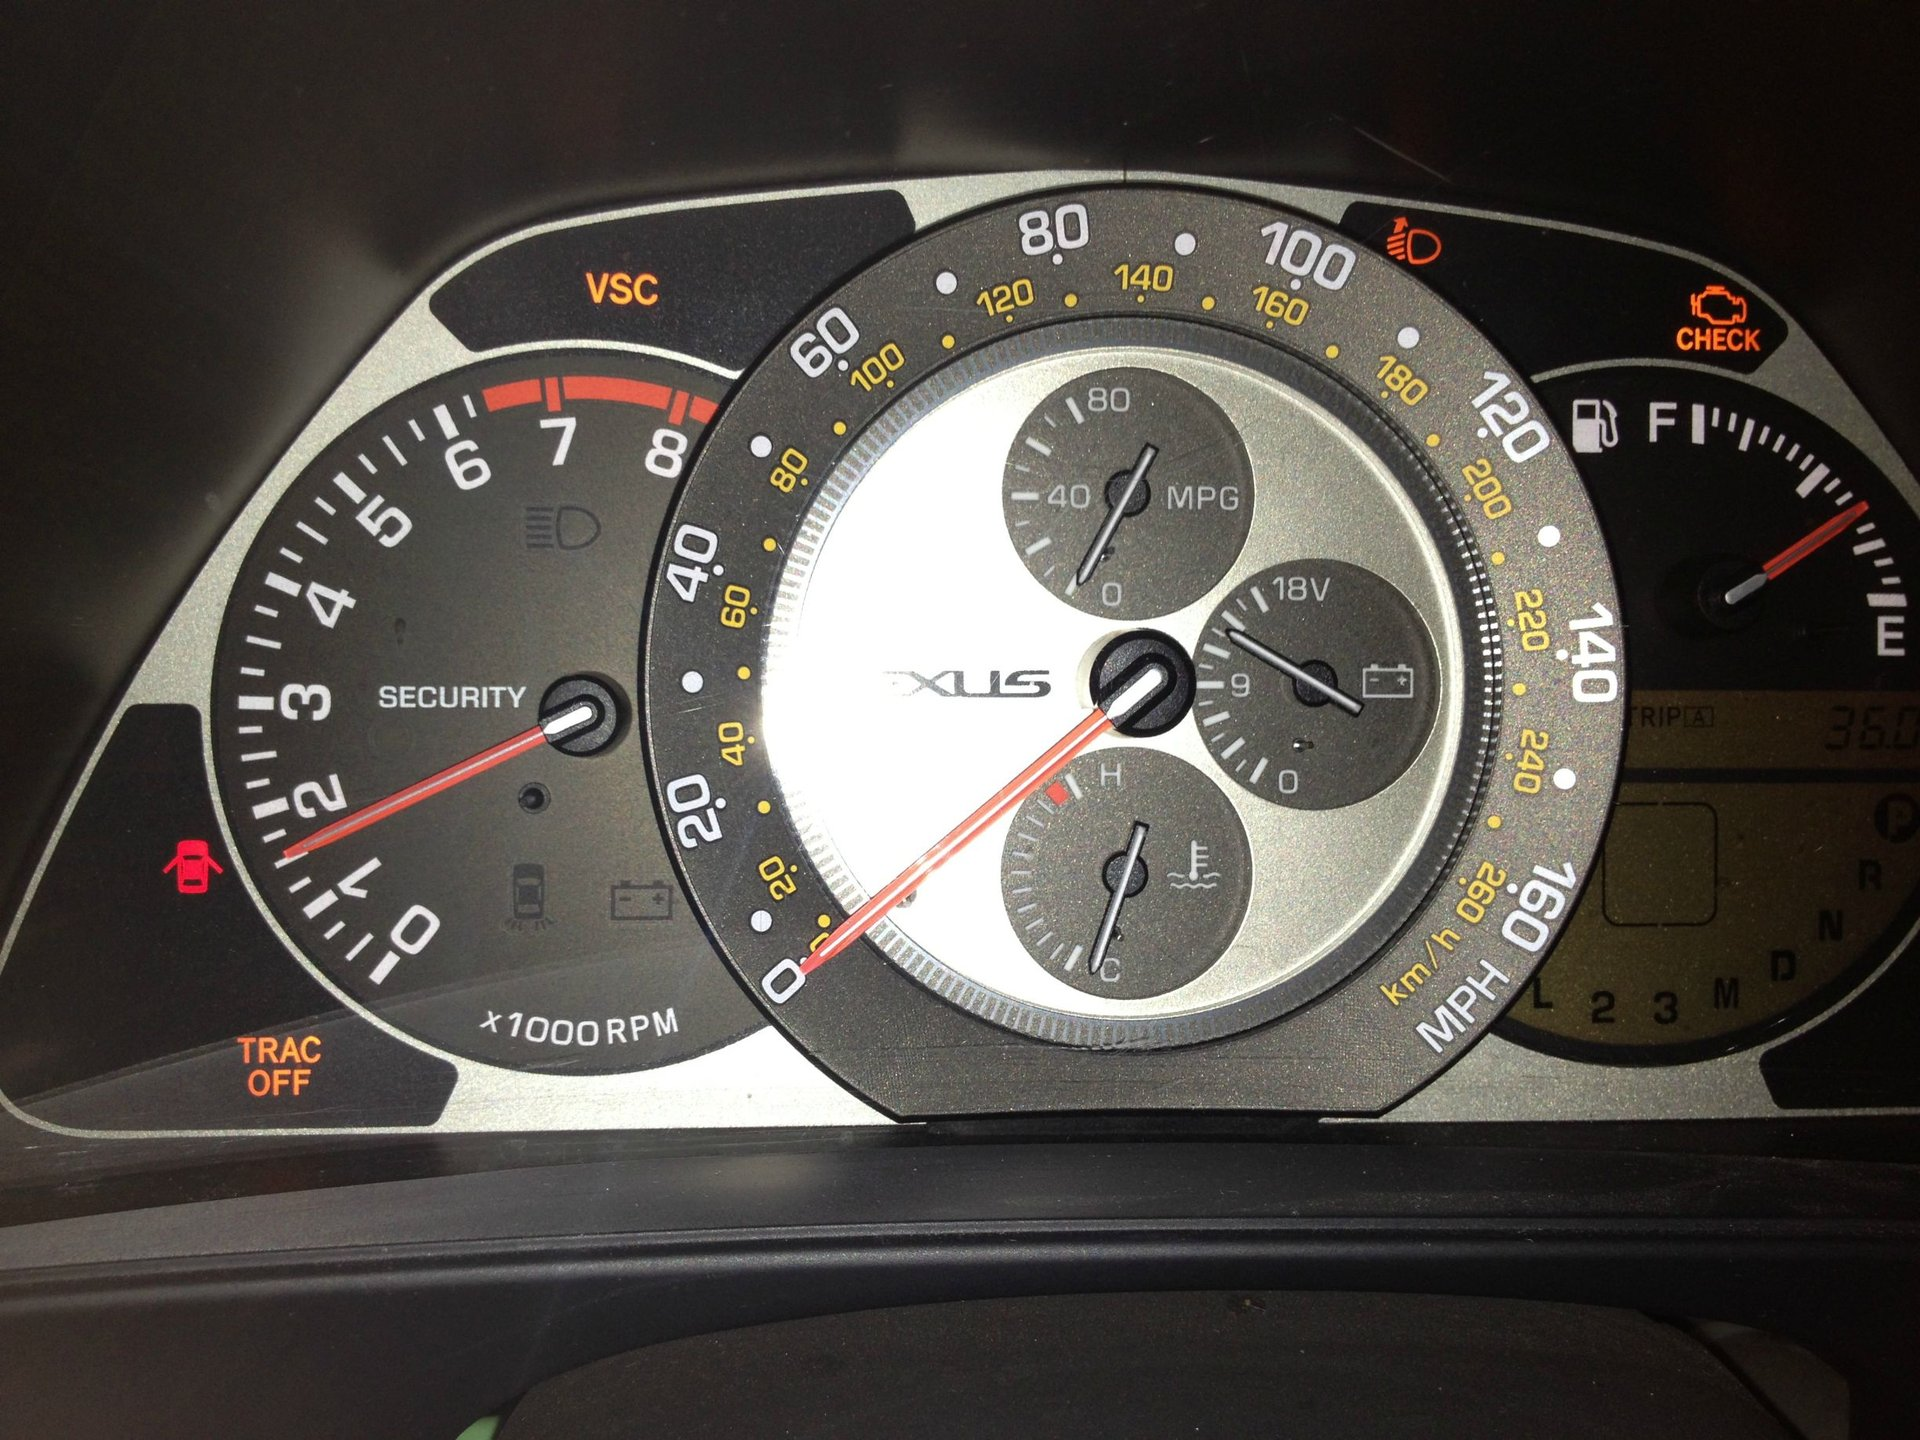 Check Engine Light On And Off >> Check Engine Light Vsc Light And Trac Off Light All On